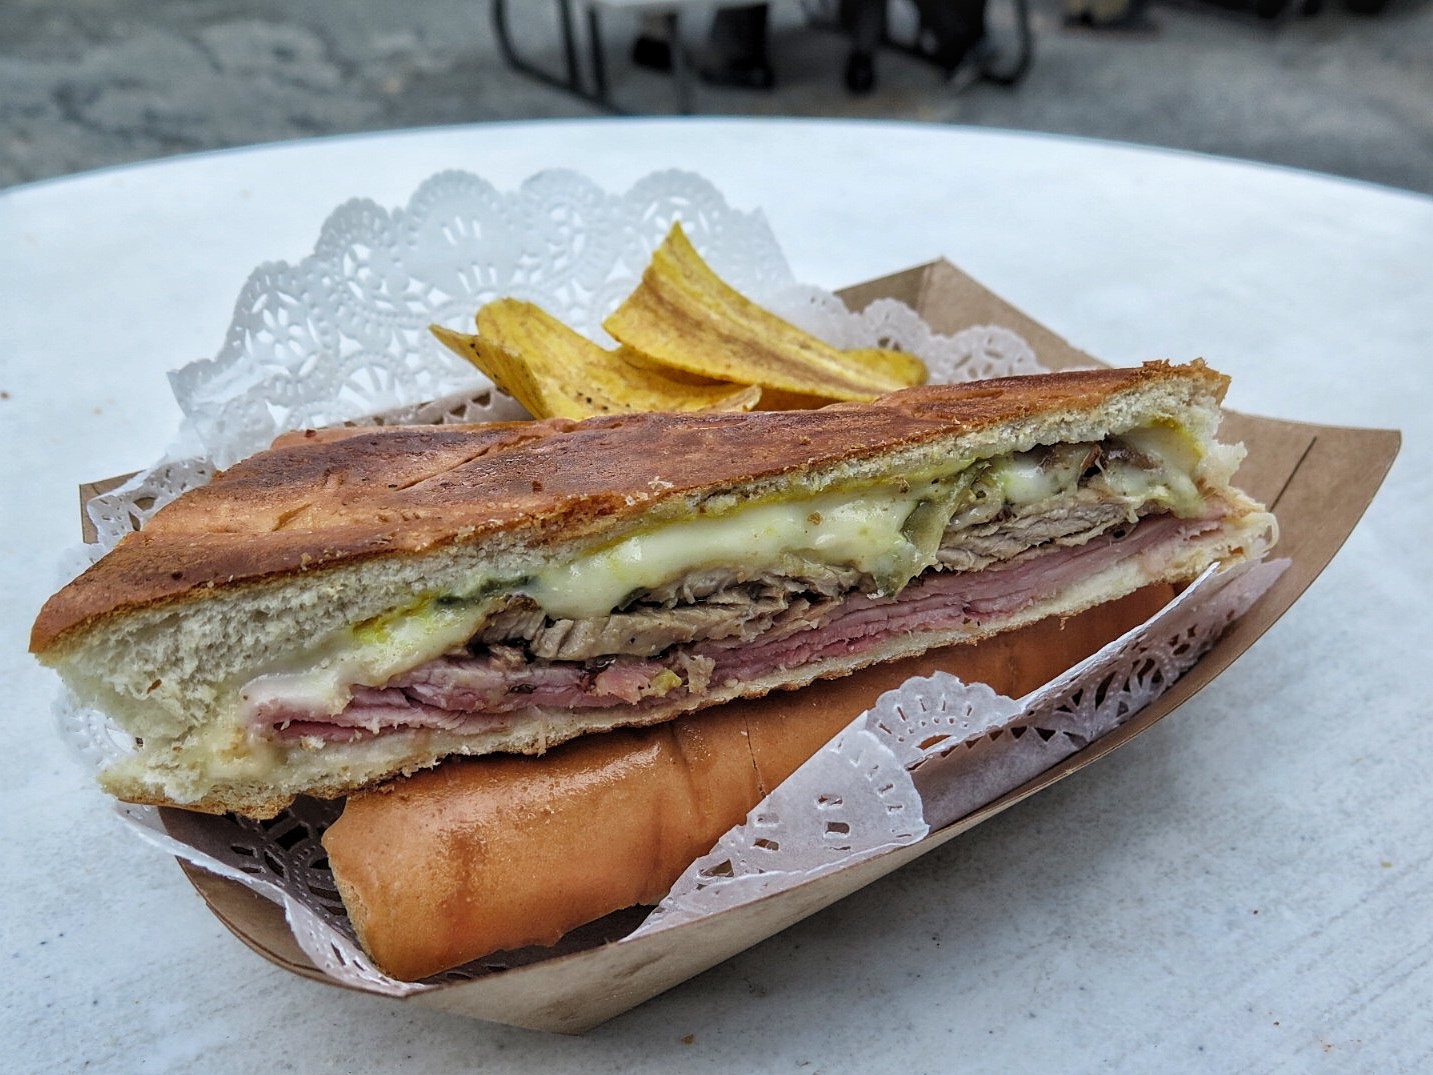 The Cuban sandwich right off of the press at Buena Gente. PHOTOGRAPH BY JENNIFER ZYMAN.